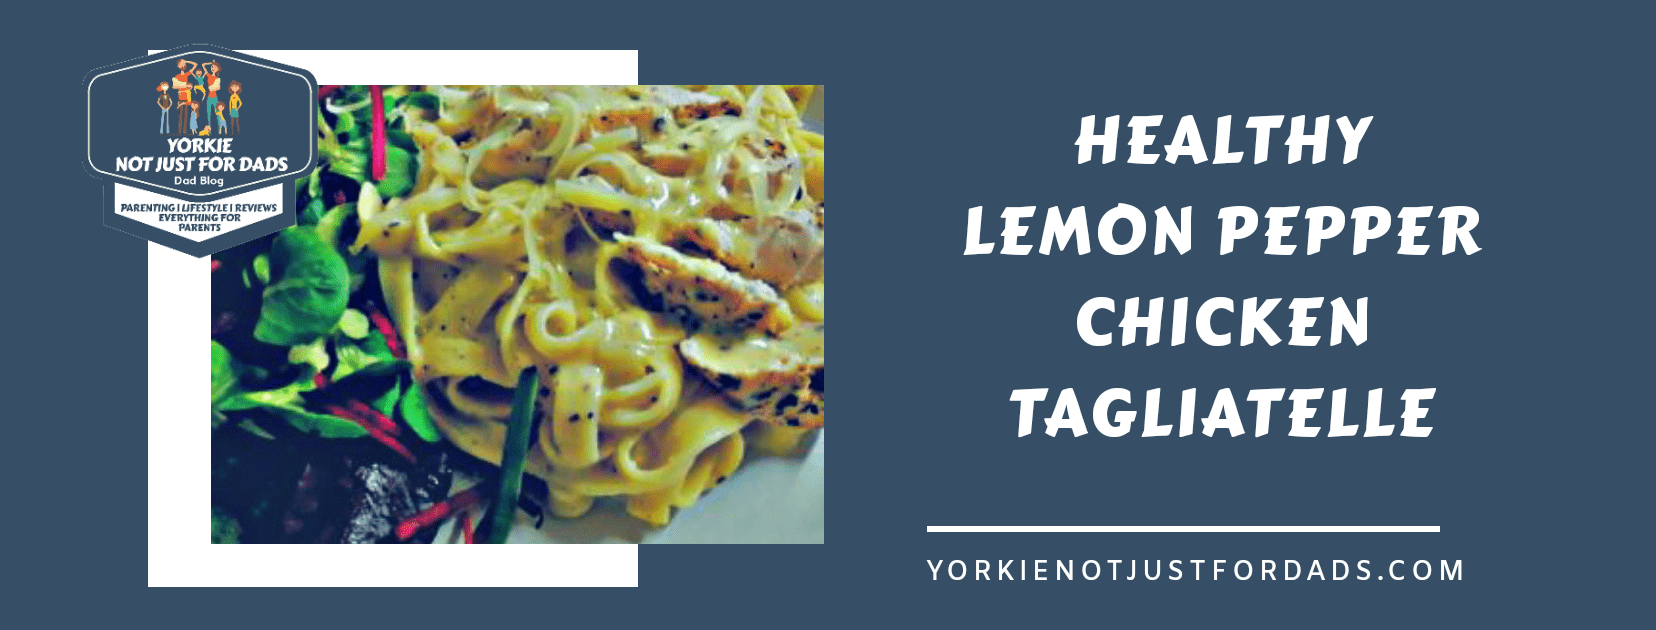 Featured image for the post healthy lemon pepper chicken tagliatelle